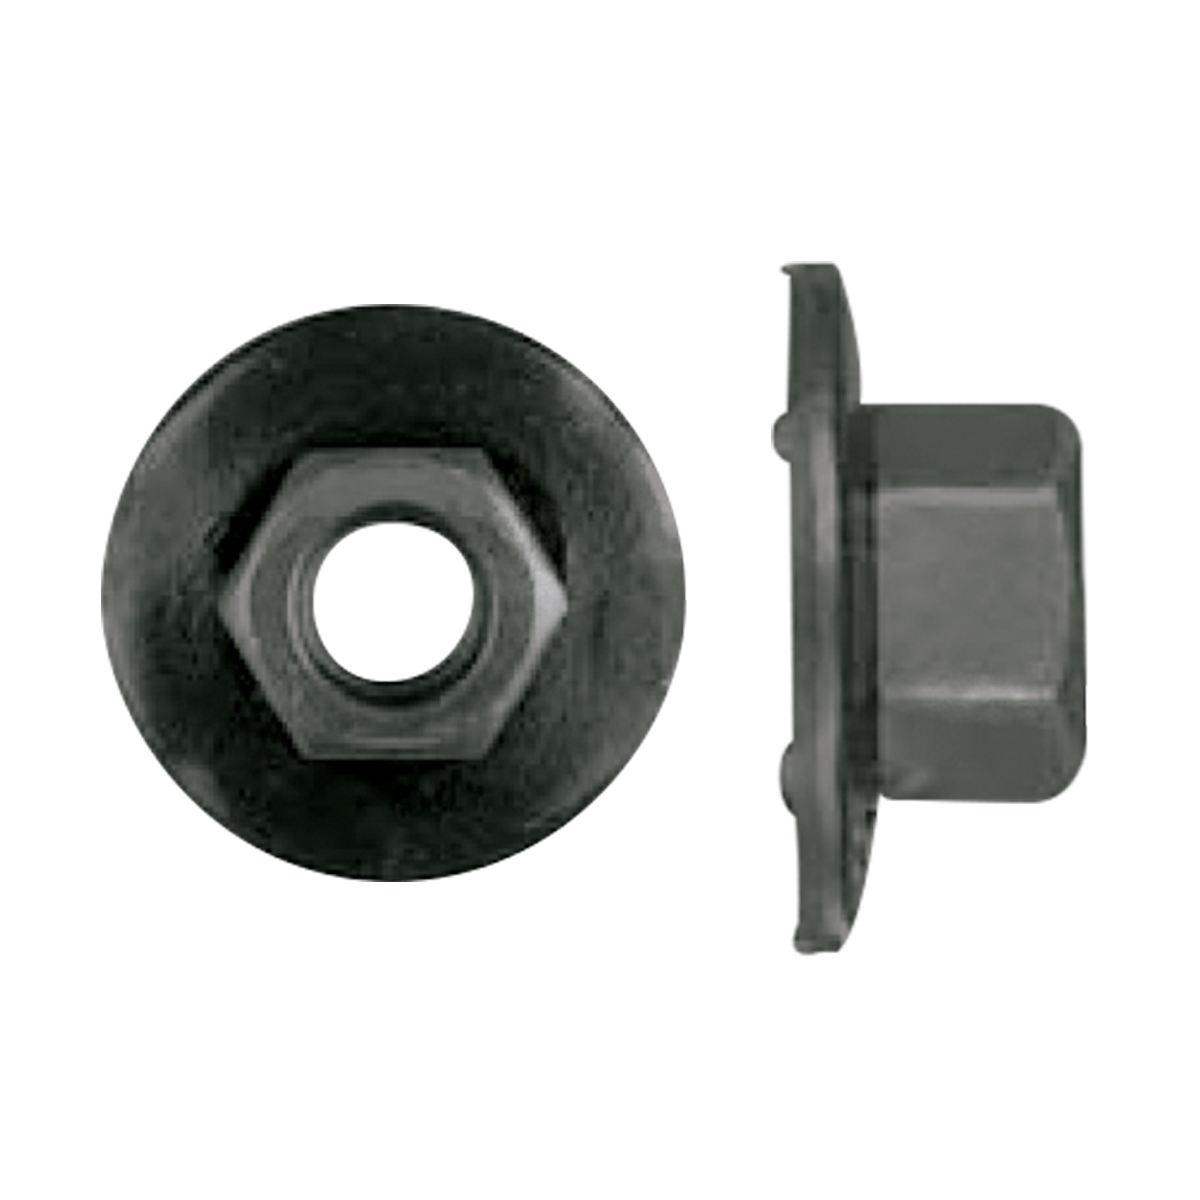 Washer Nuts